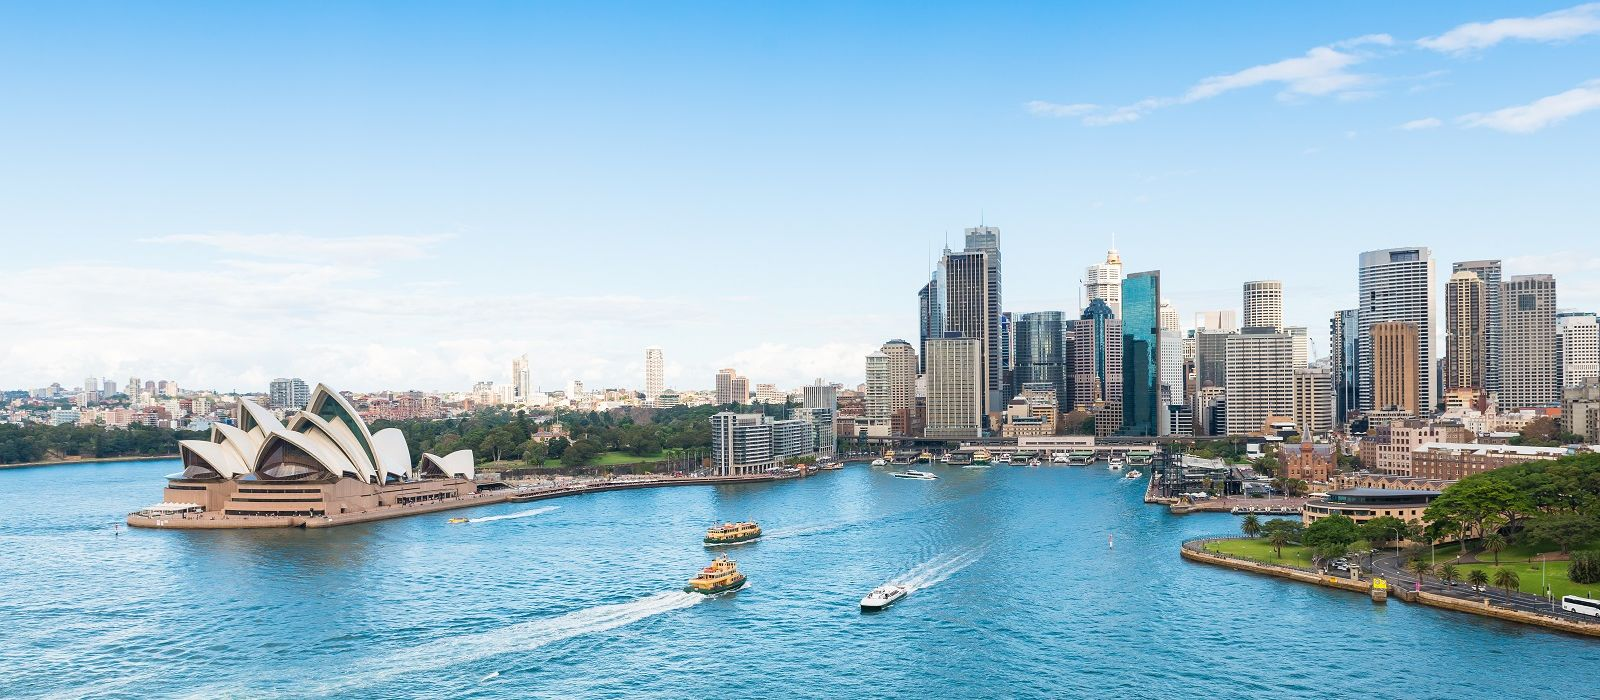 Australia: Cities, National Parks & Beaches Tour Trip 1